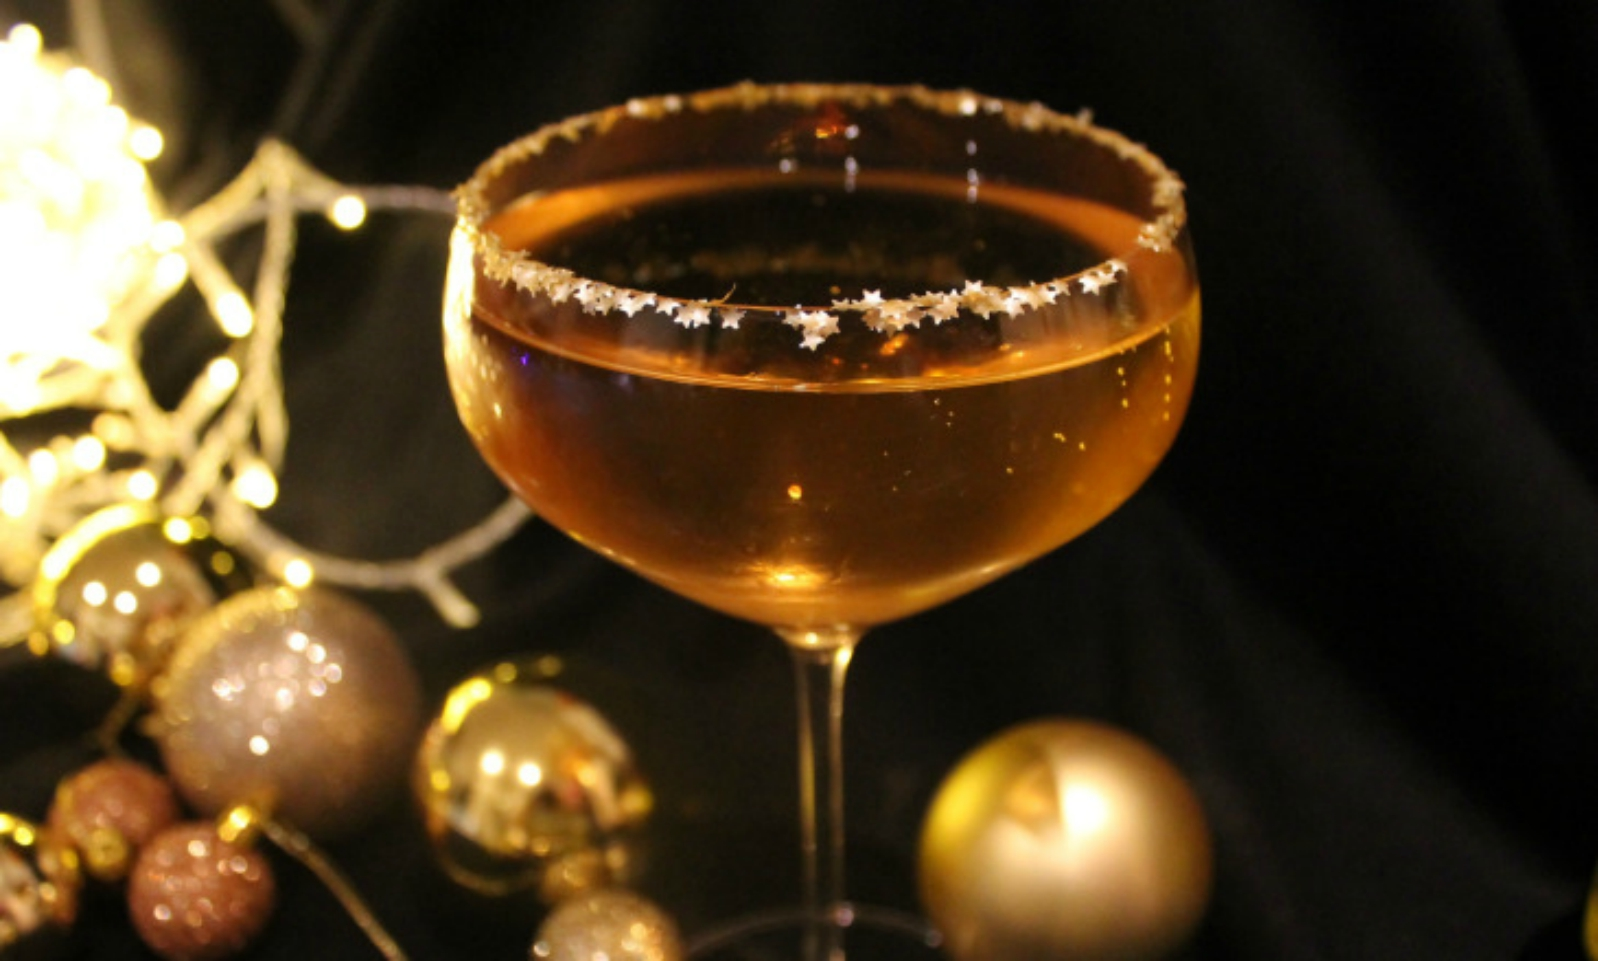 The Golden Bauble Cocktail